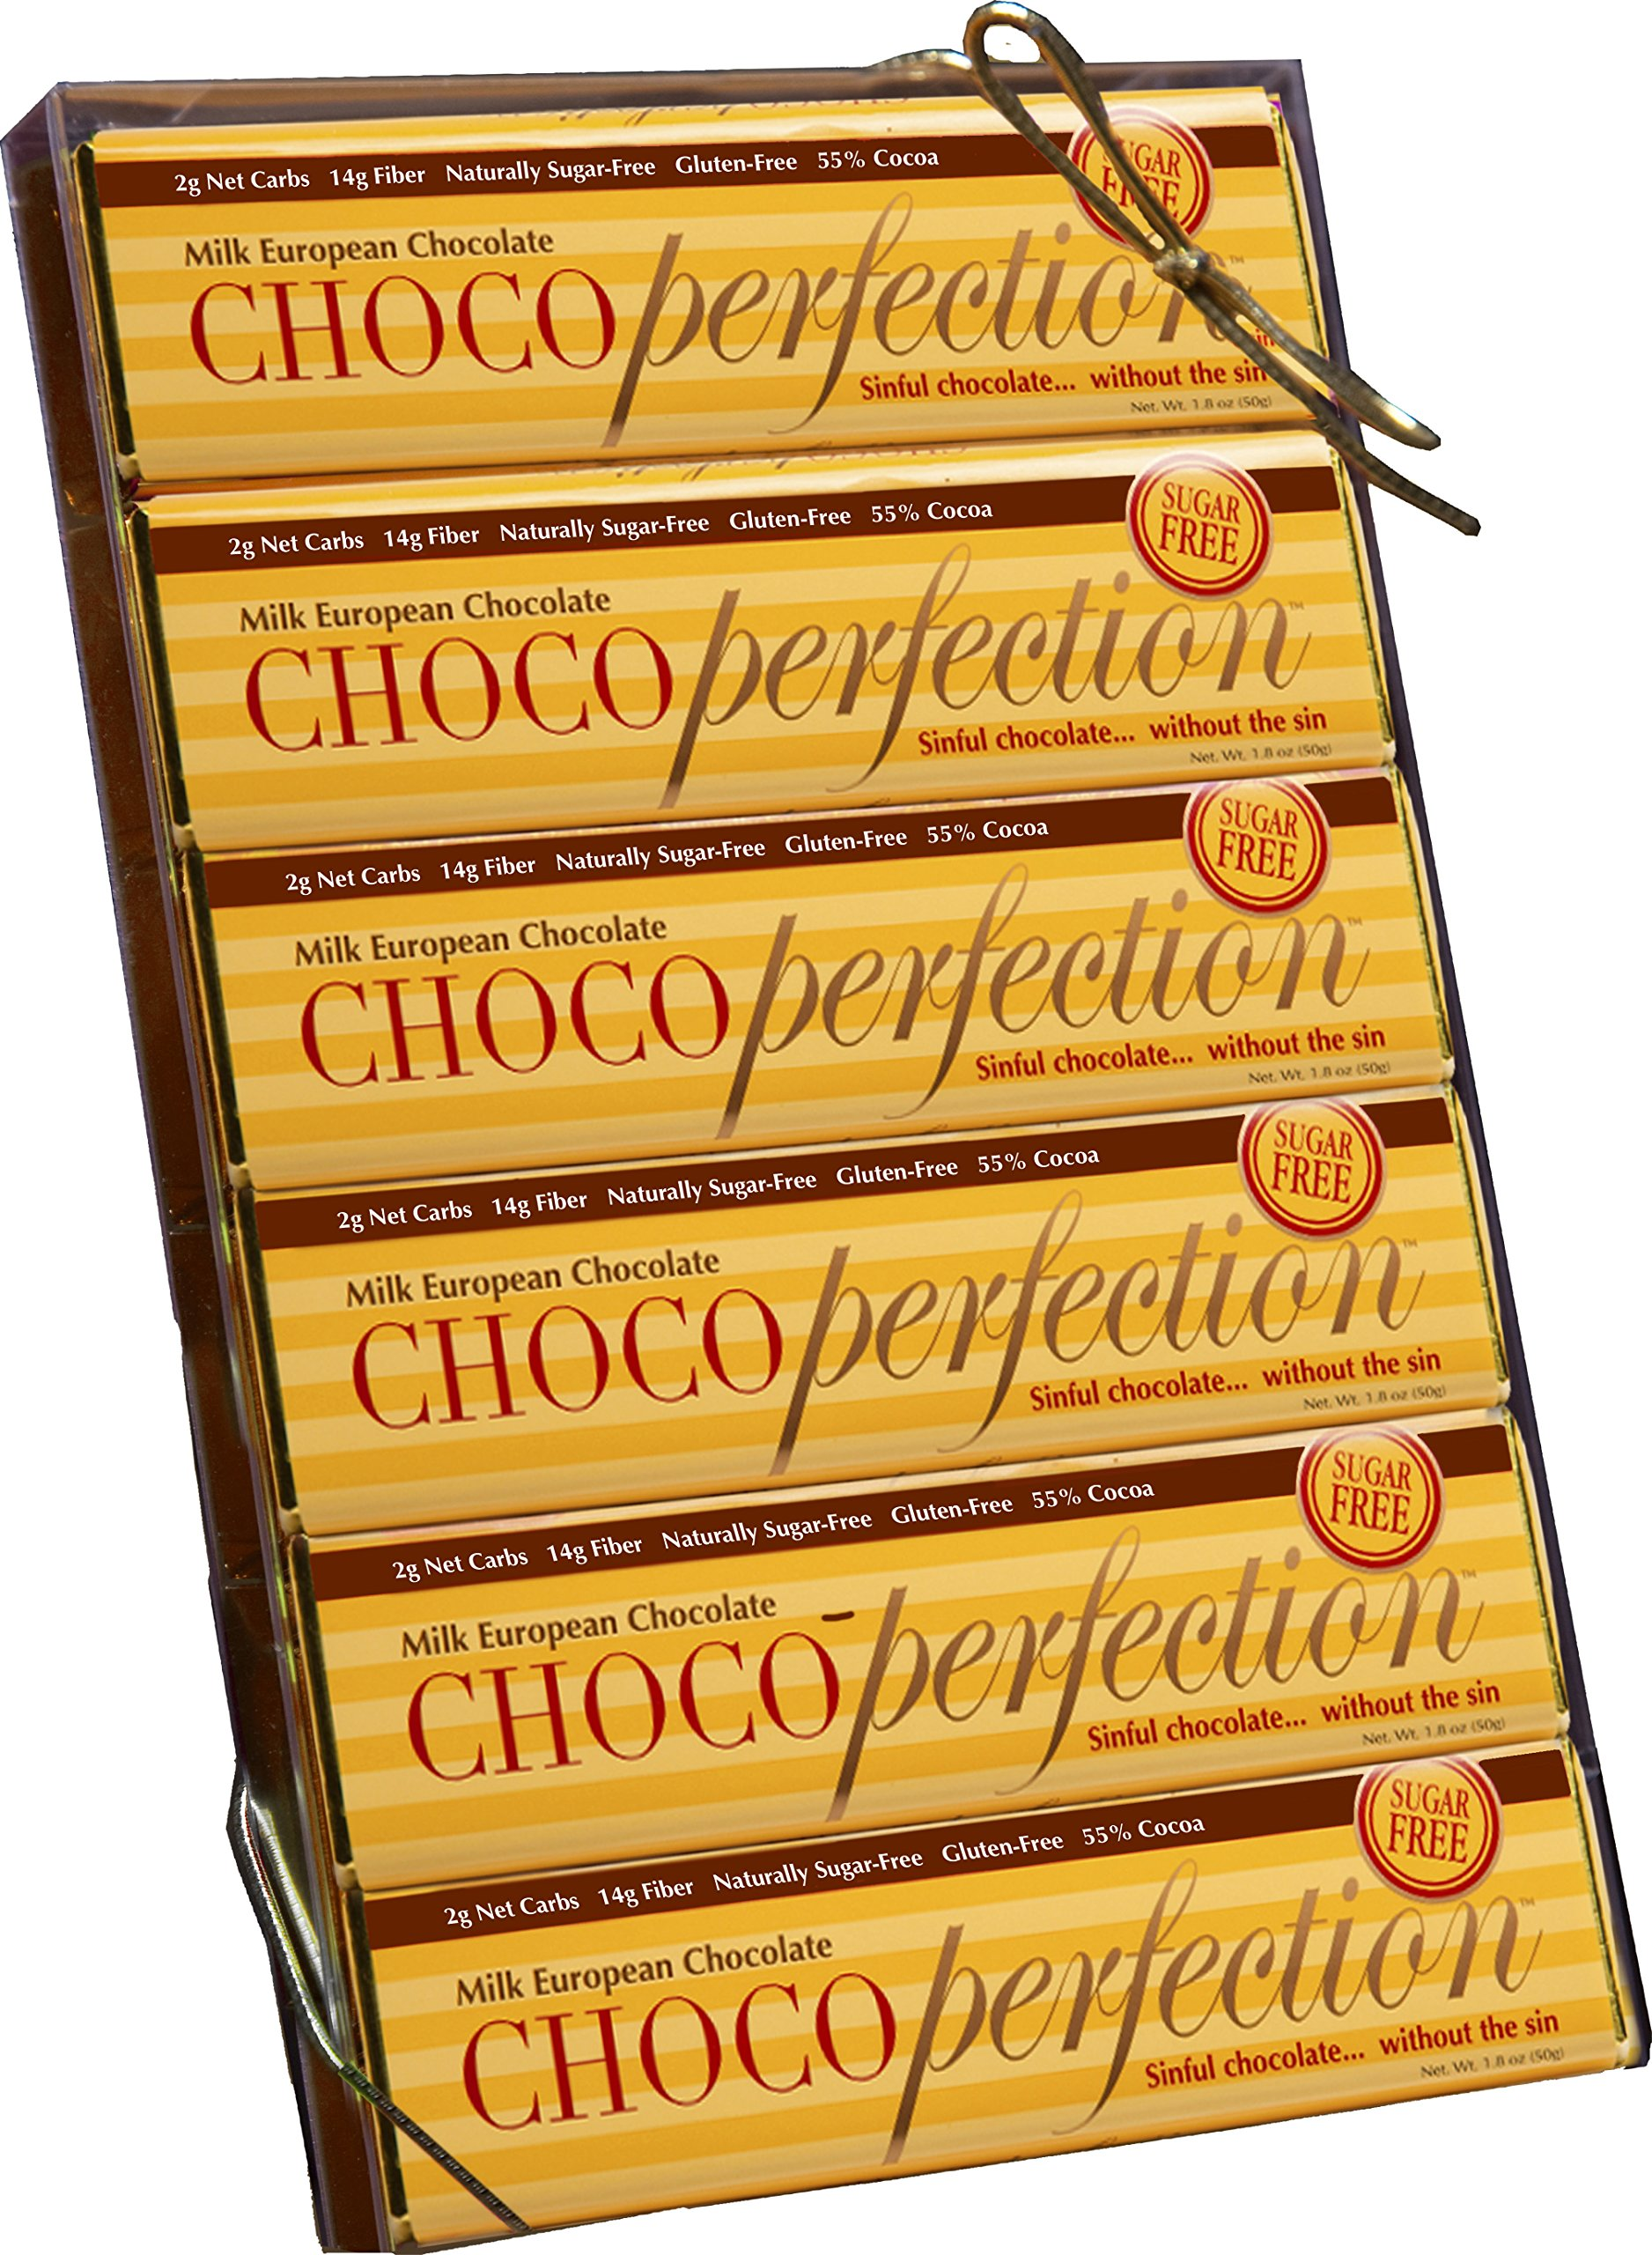 ChocoPerfection Sugar Free Milk Chocolate Bars - No Maltitol - Box of 12 Bars, 50g each by ChocoPerfection